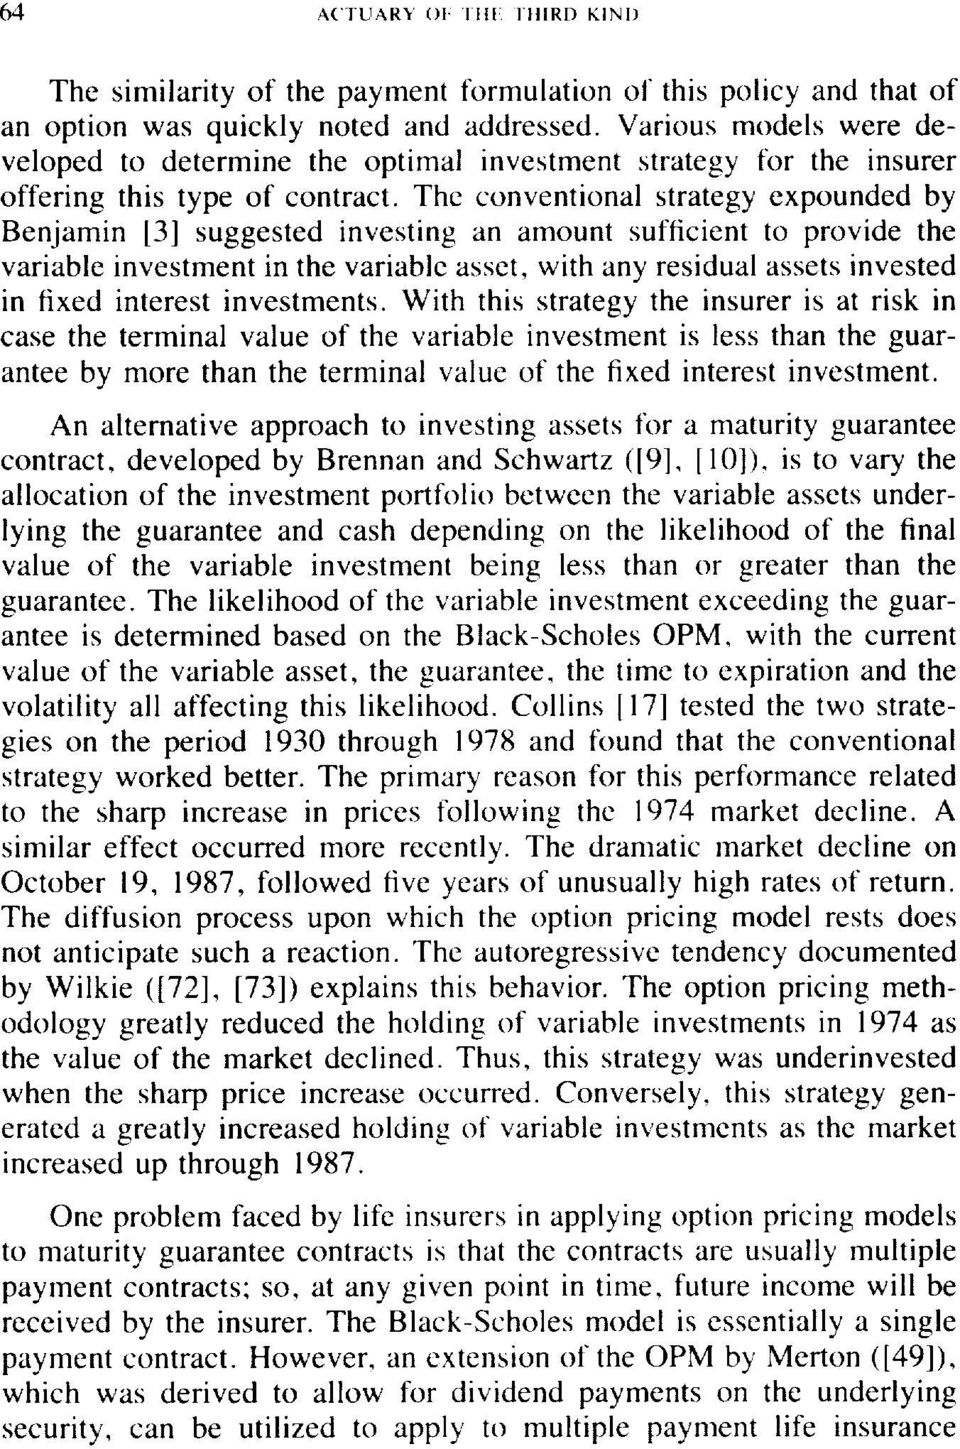 The conventional strategy expounded by Benjamin [3] suggested investing an amount sufficient to provide the variable investment in the variable asset, with any residual assets invested in fixed